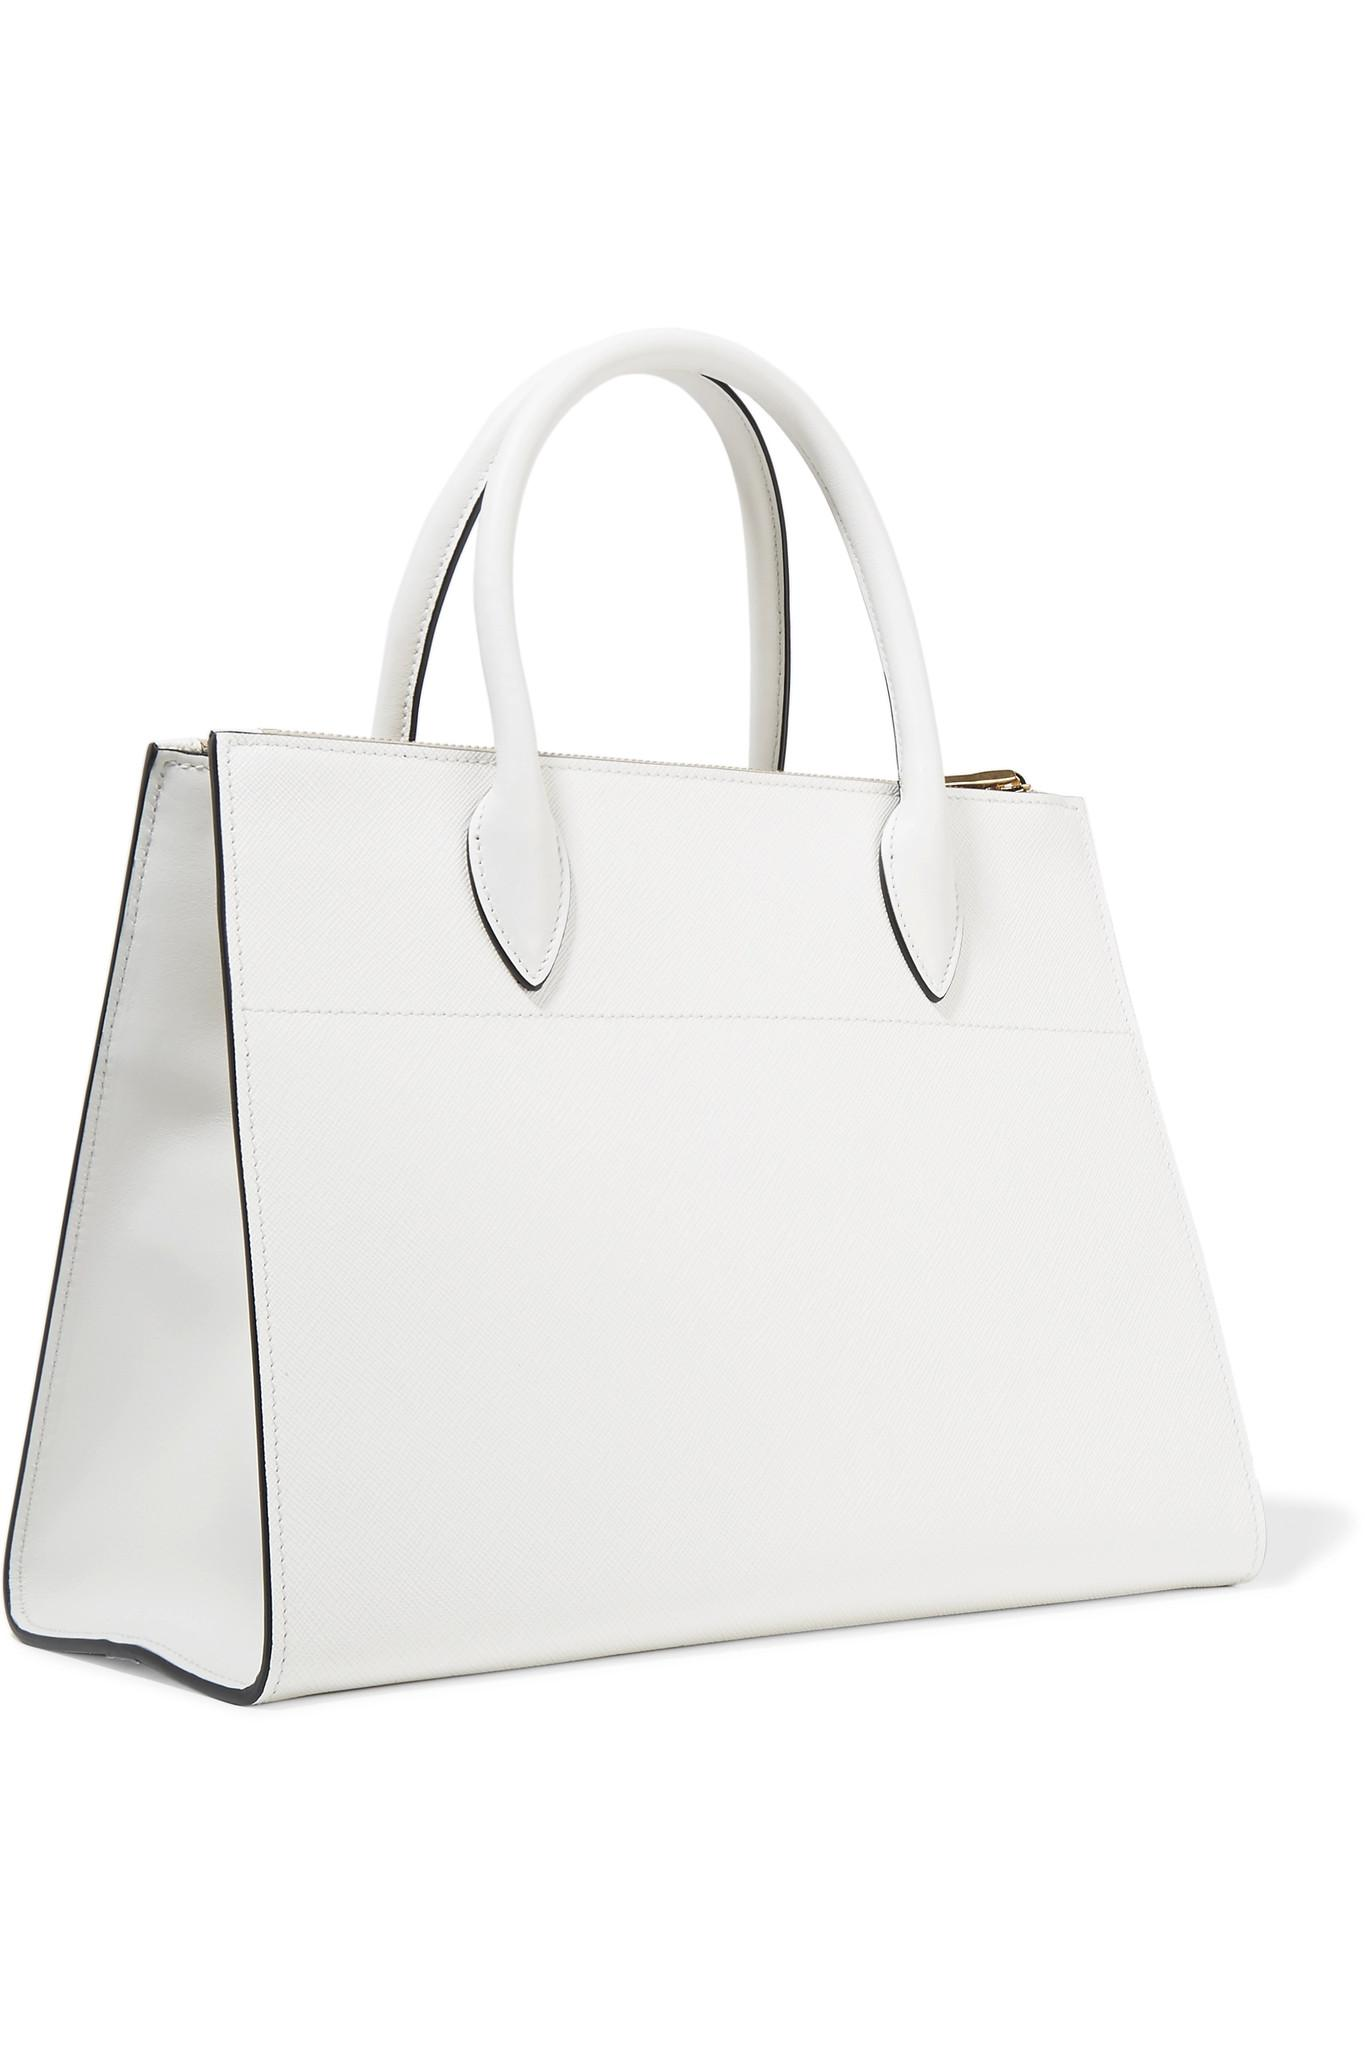 7ea3060eead8 ... italy lyst prada paradigme textured leather tote in white 8a3d8 e8f46